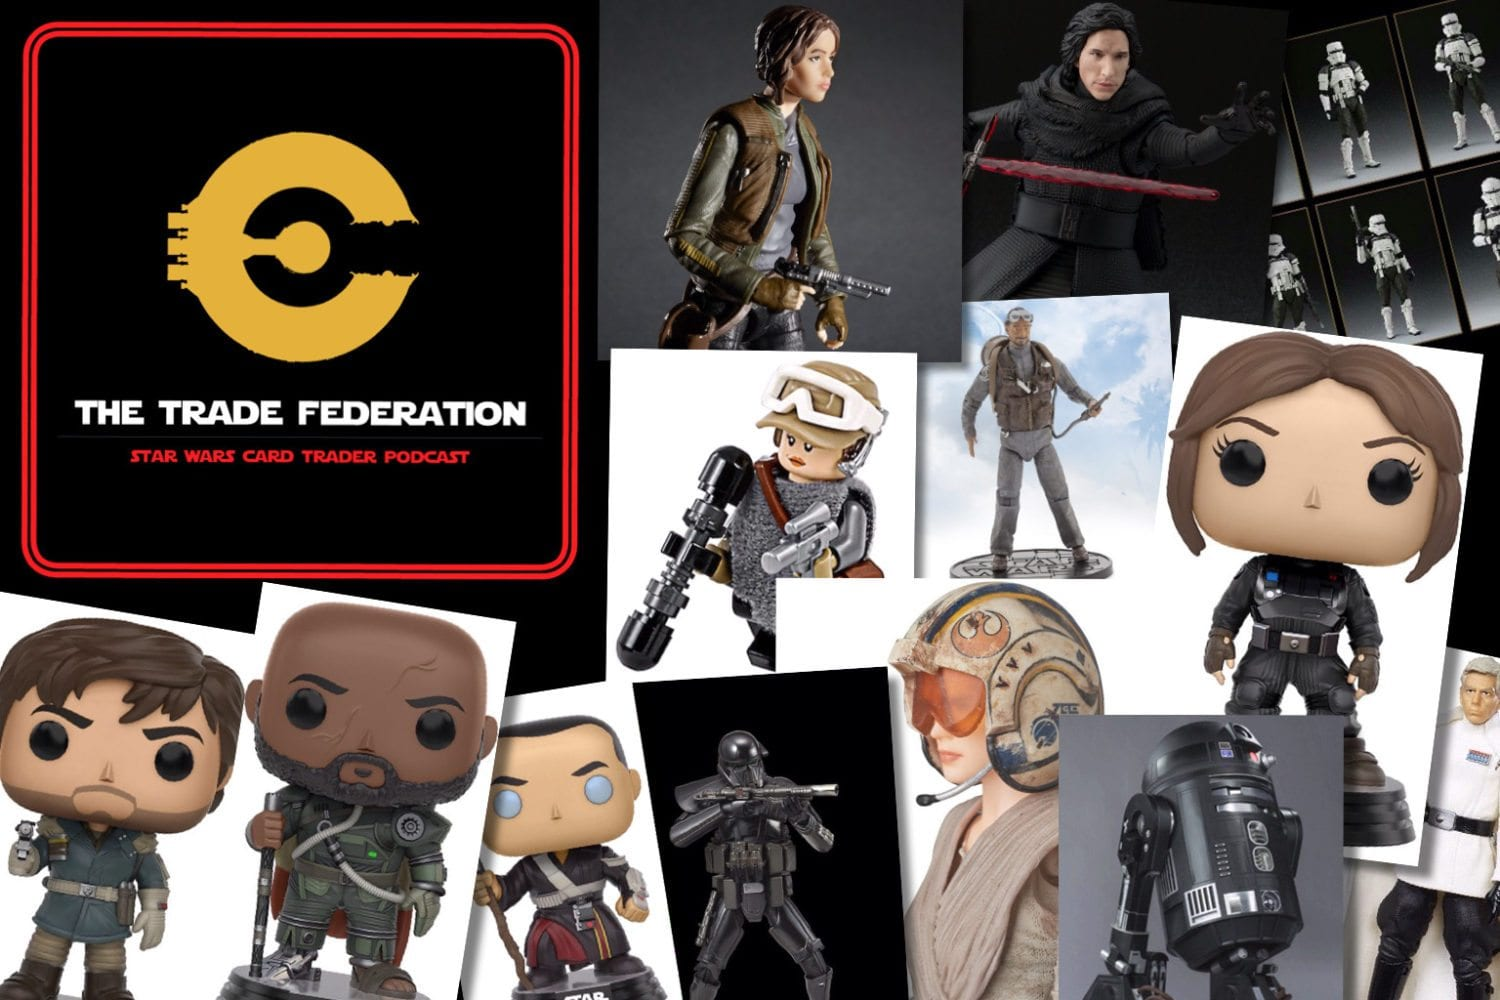 Rogue One product announcements Trade Federation Episode 70 - Rogue One